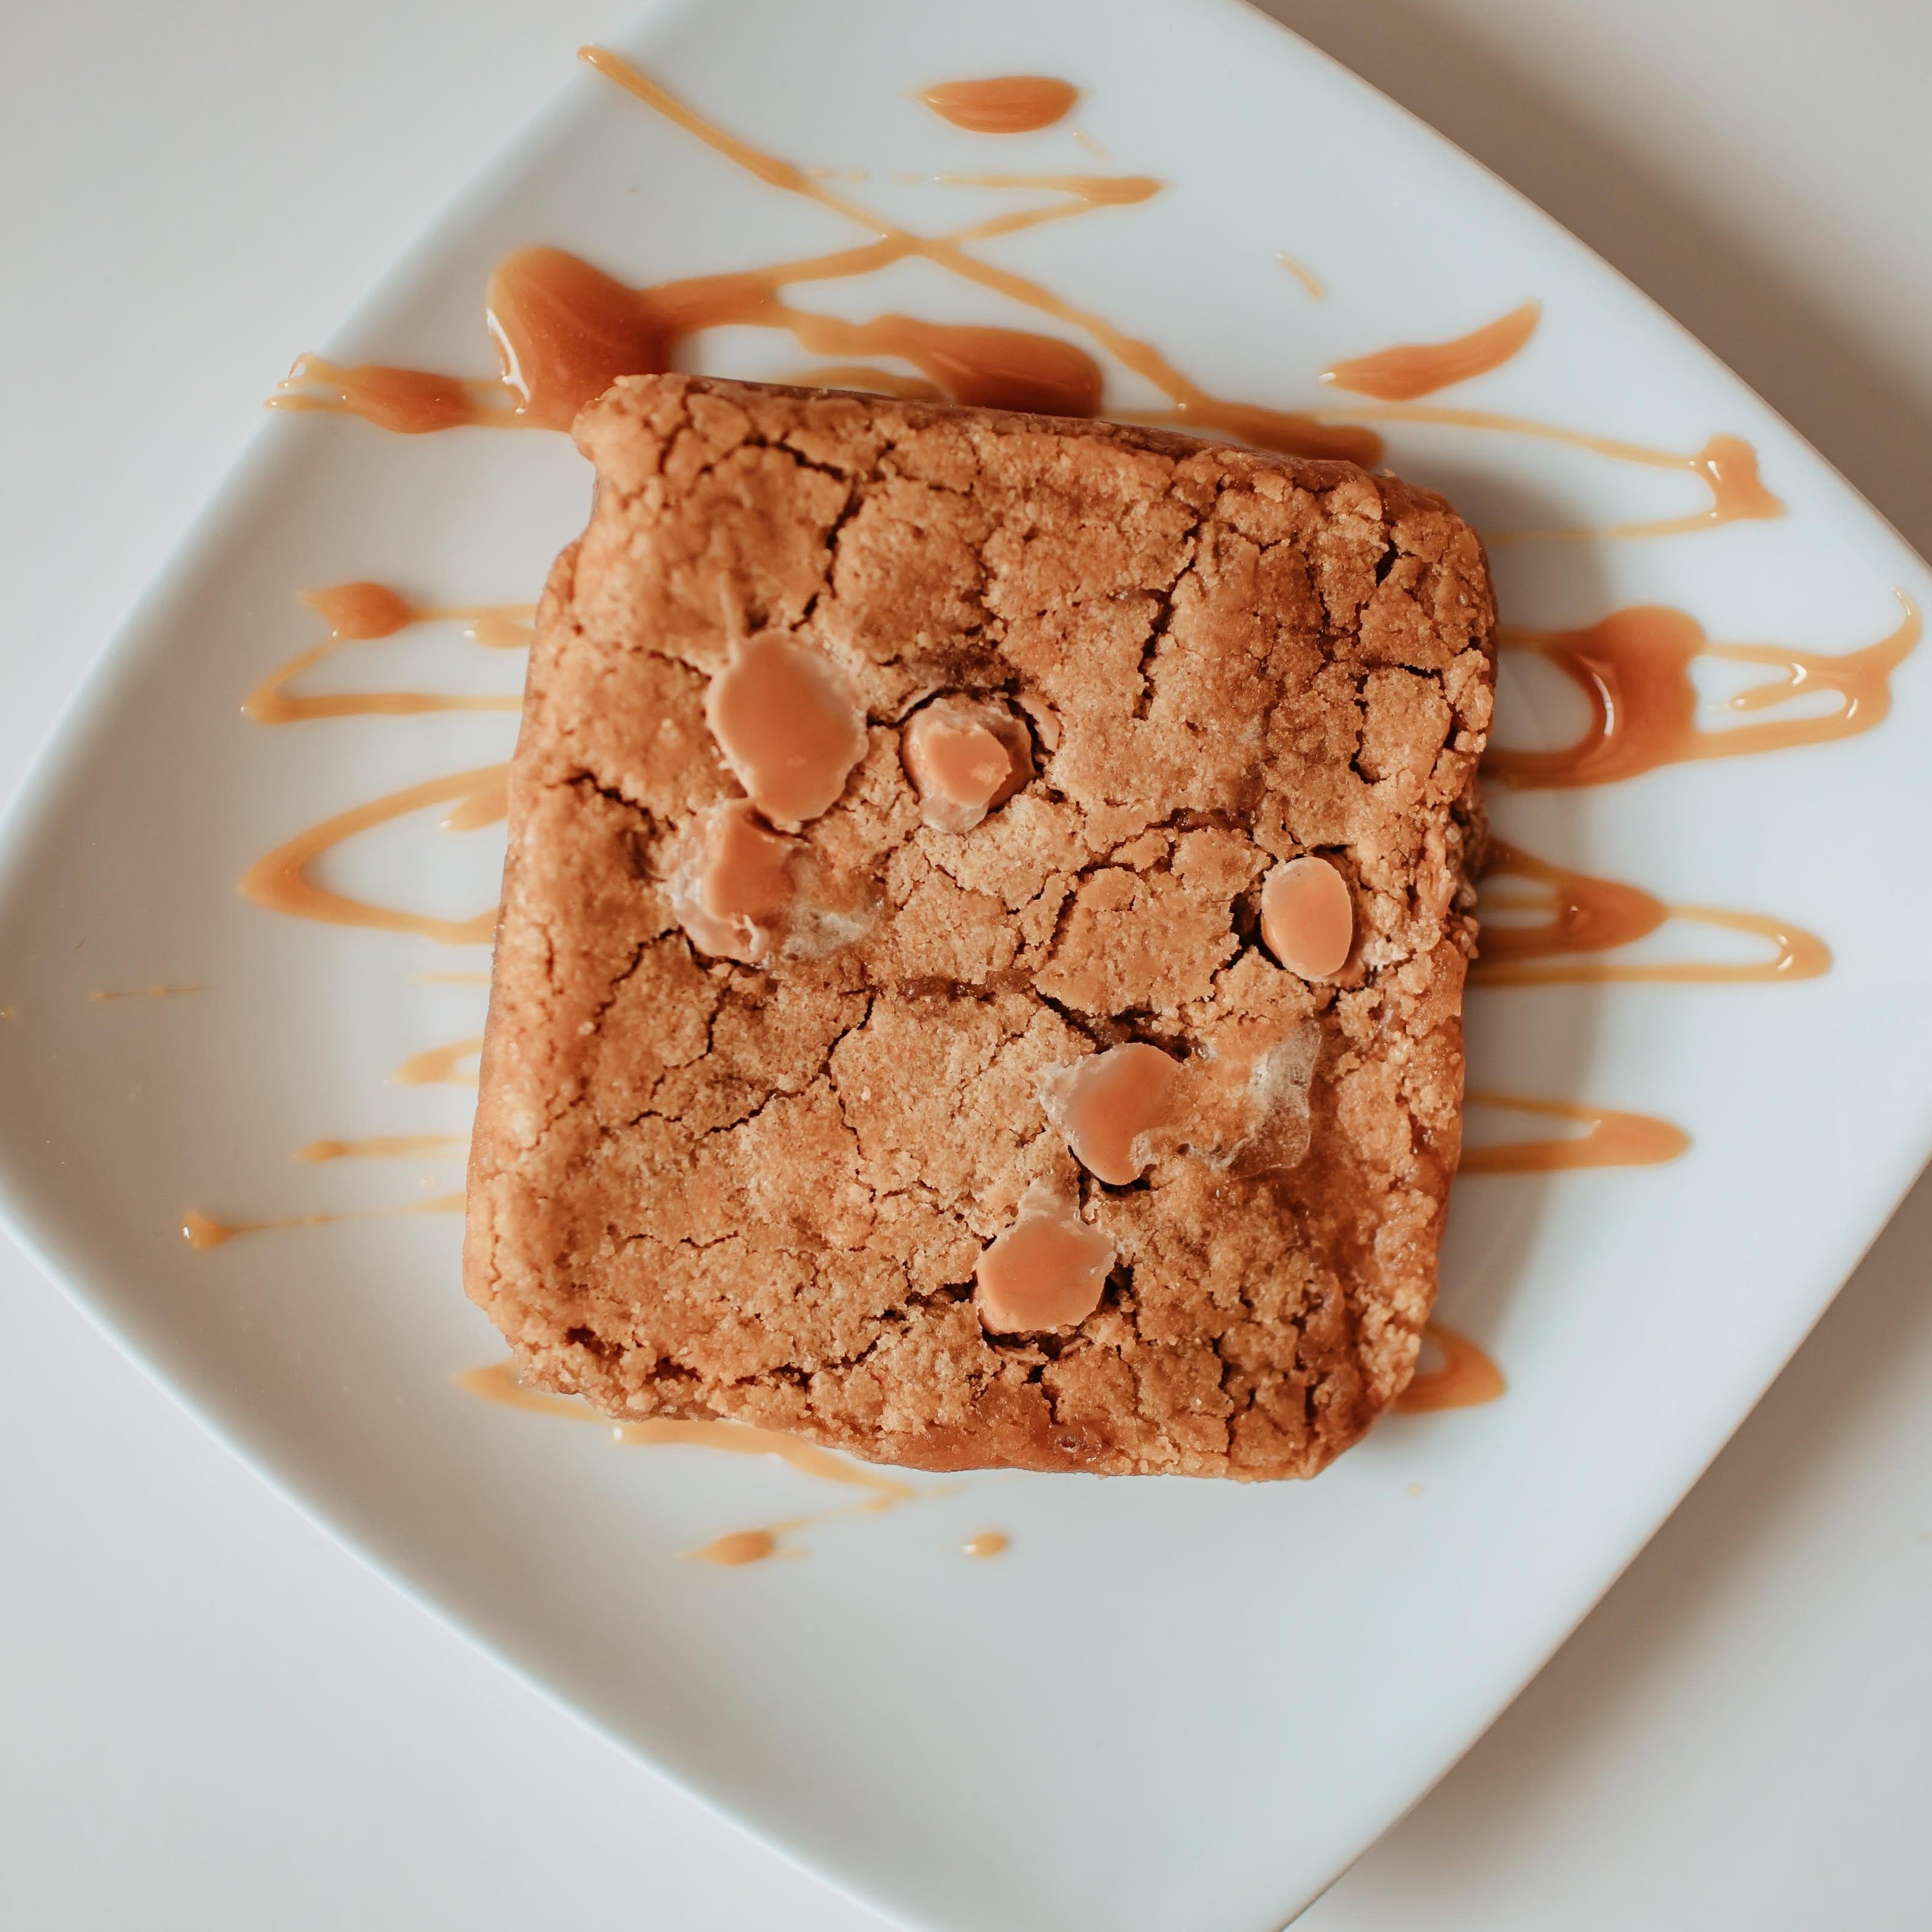 Butterscotch Toffee Blondie